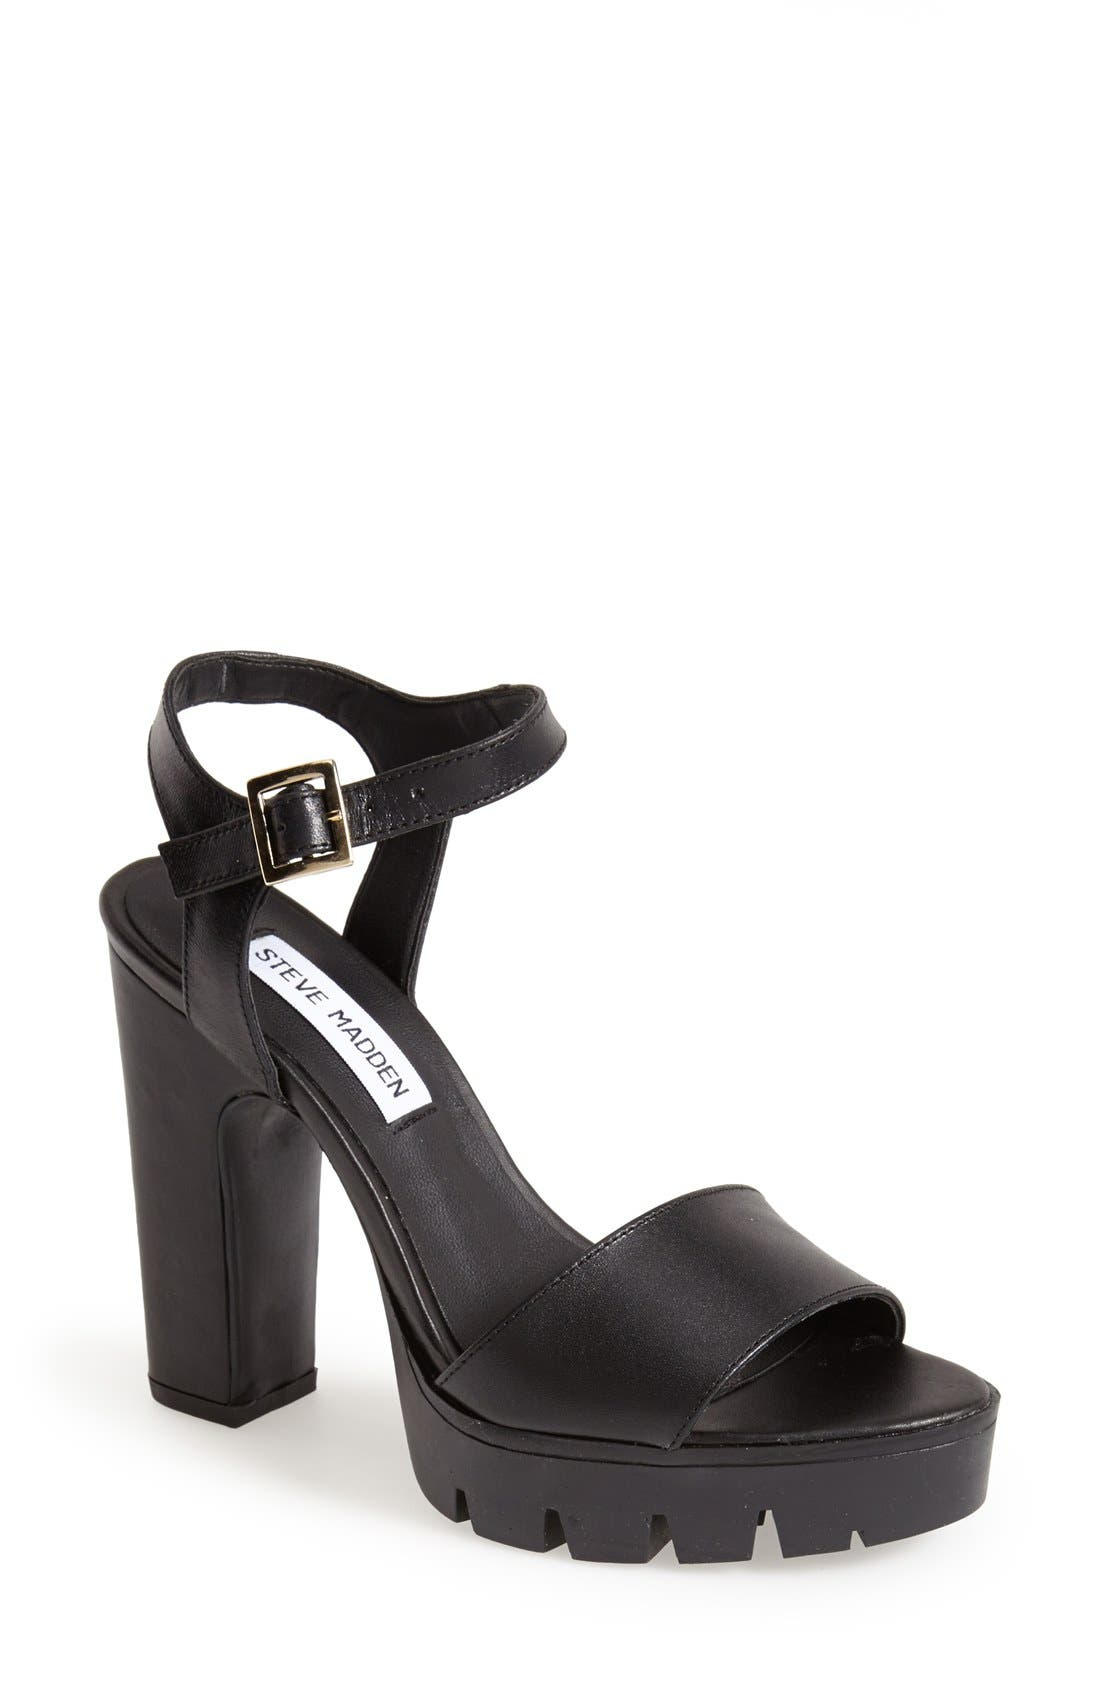 Alternate Image 1 Selected - Steve Madden 'Traiin' Platform Sandal (Women)